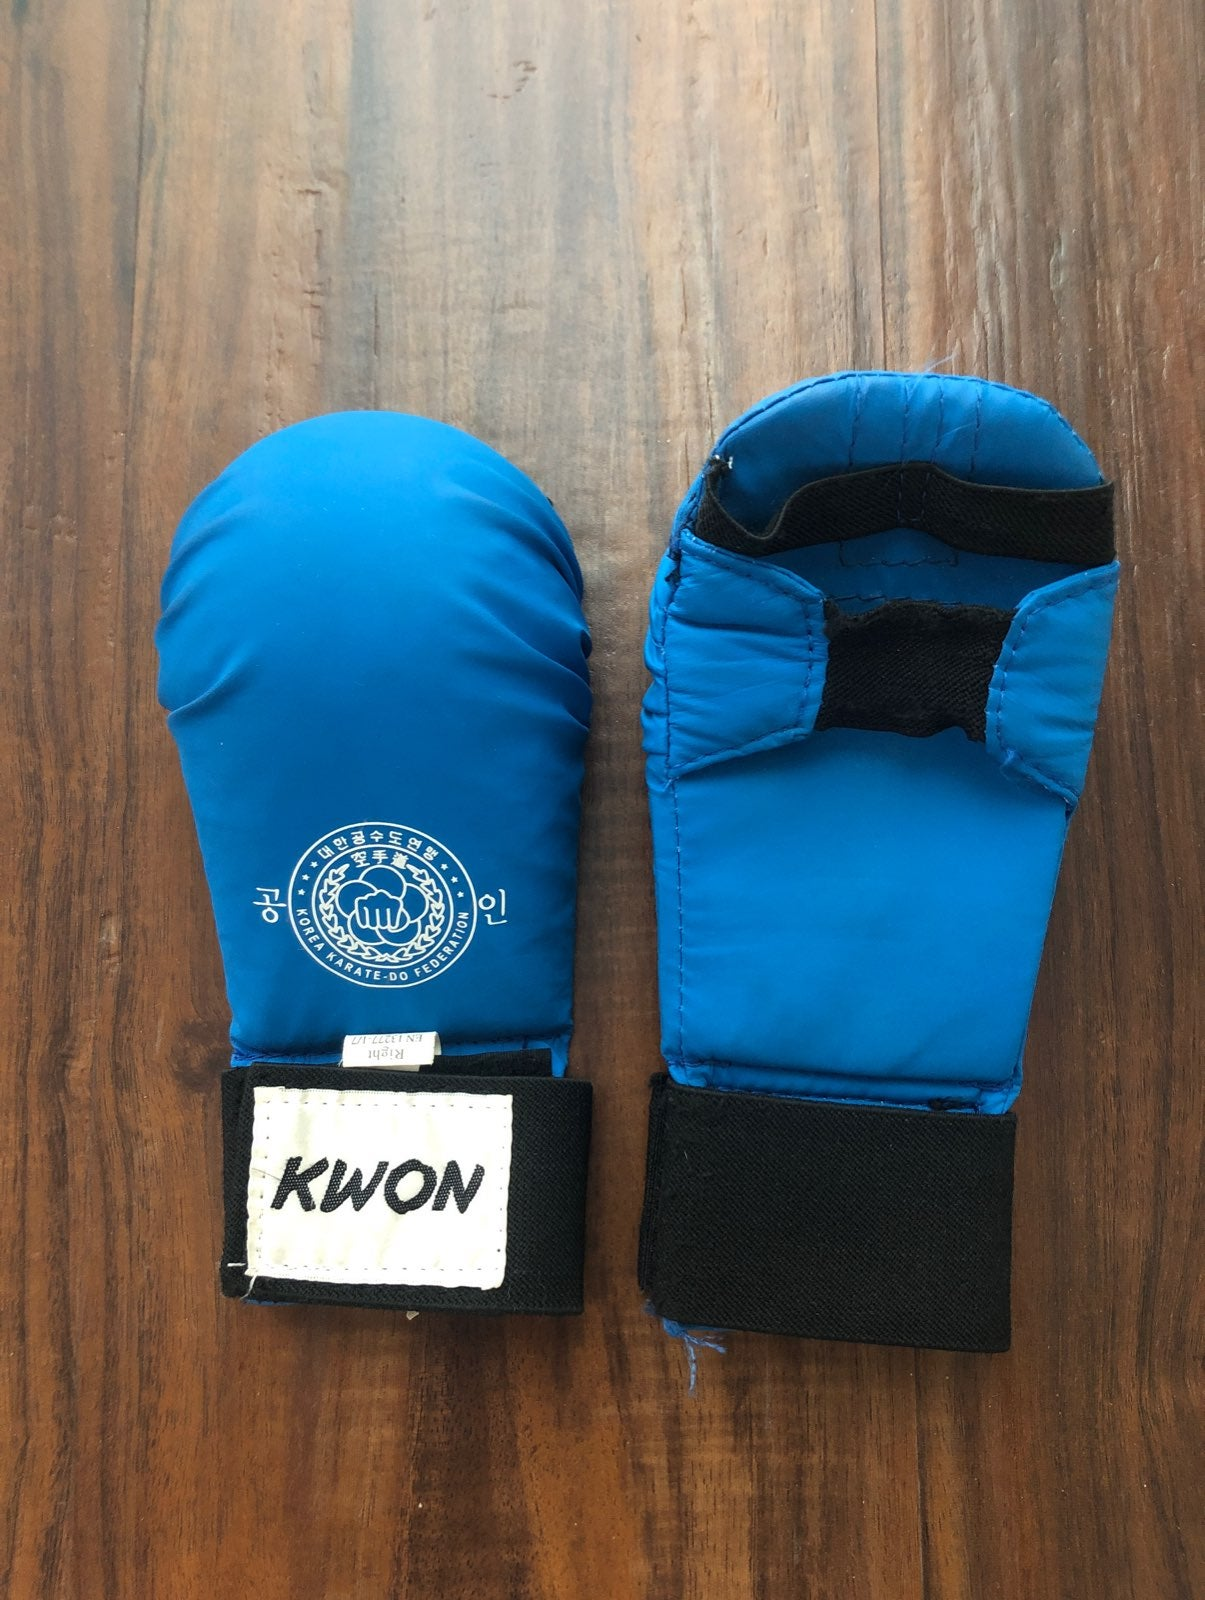 KWON Punching Gloves Mitts, Martial Arts